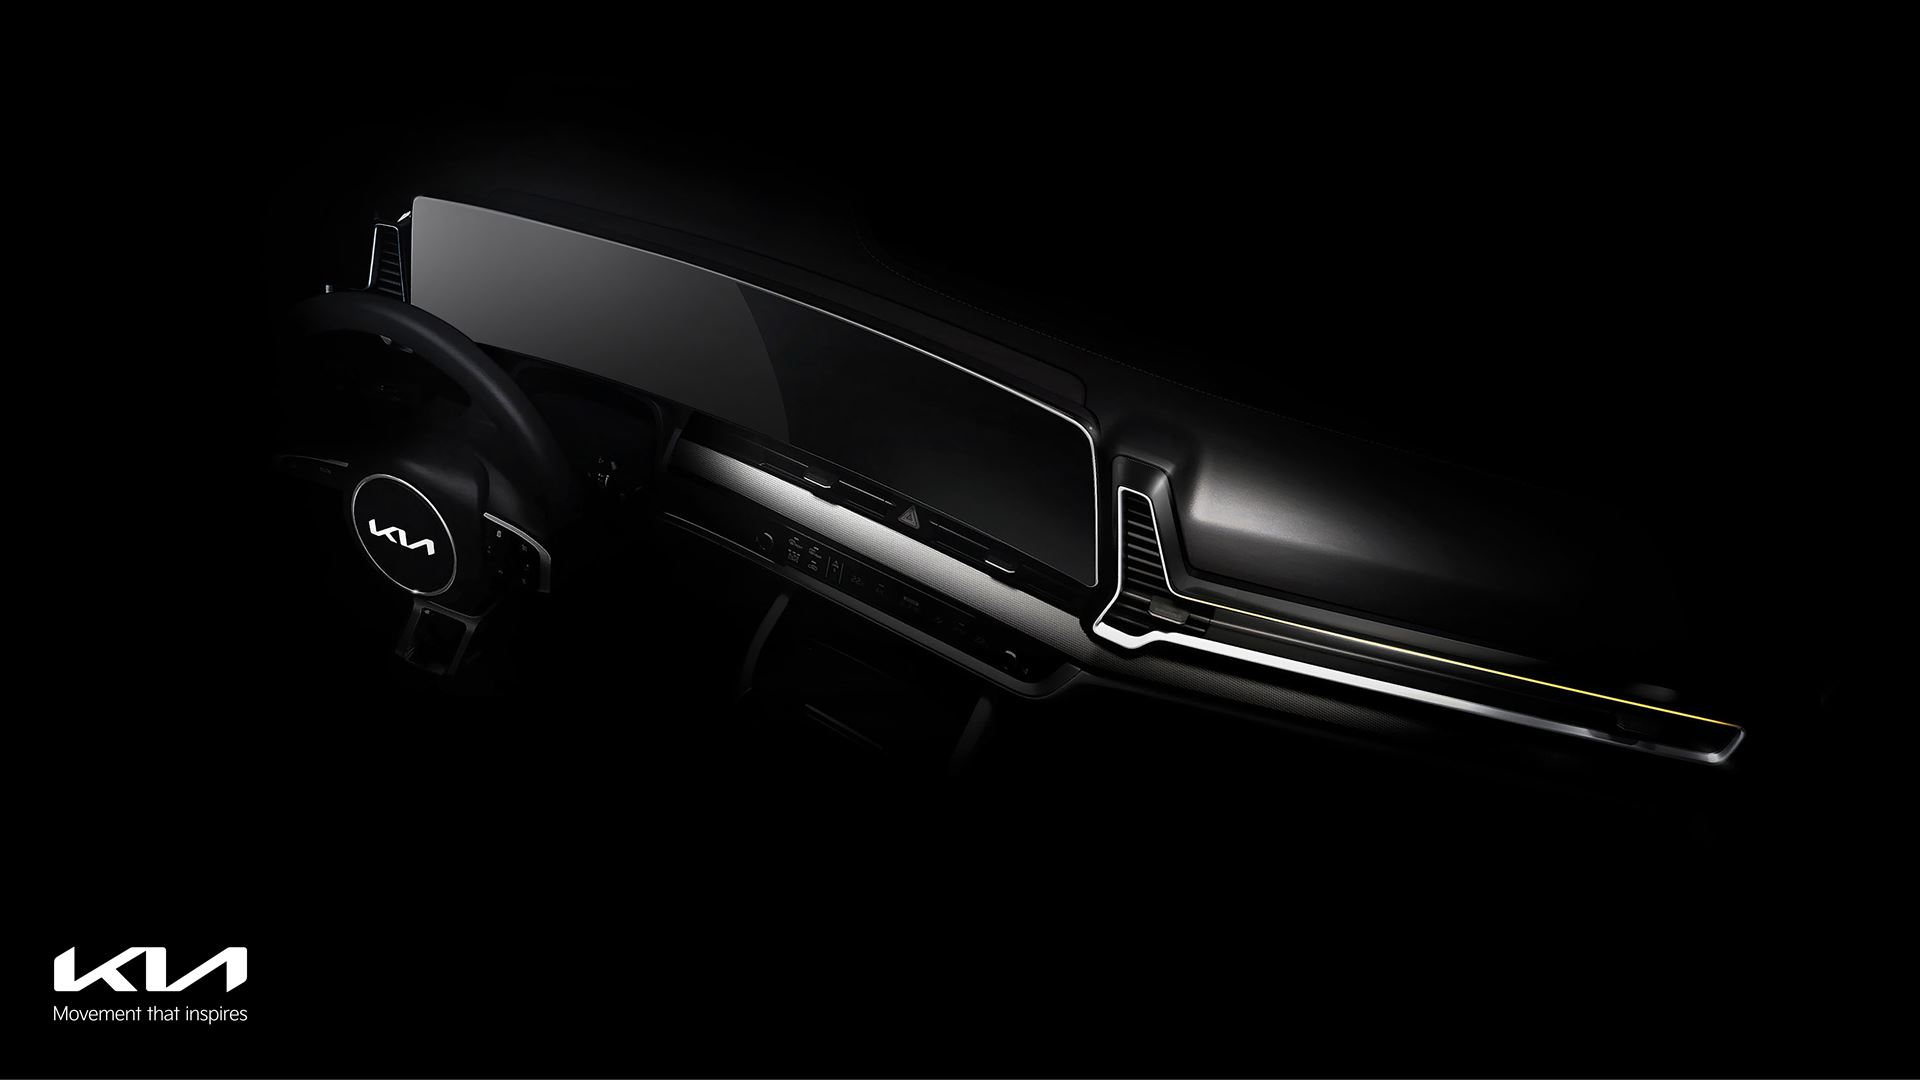 Kia teases first images of the all-new Sportage - Image 1